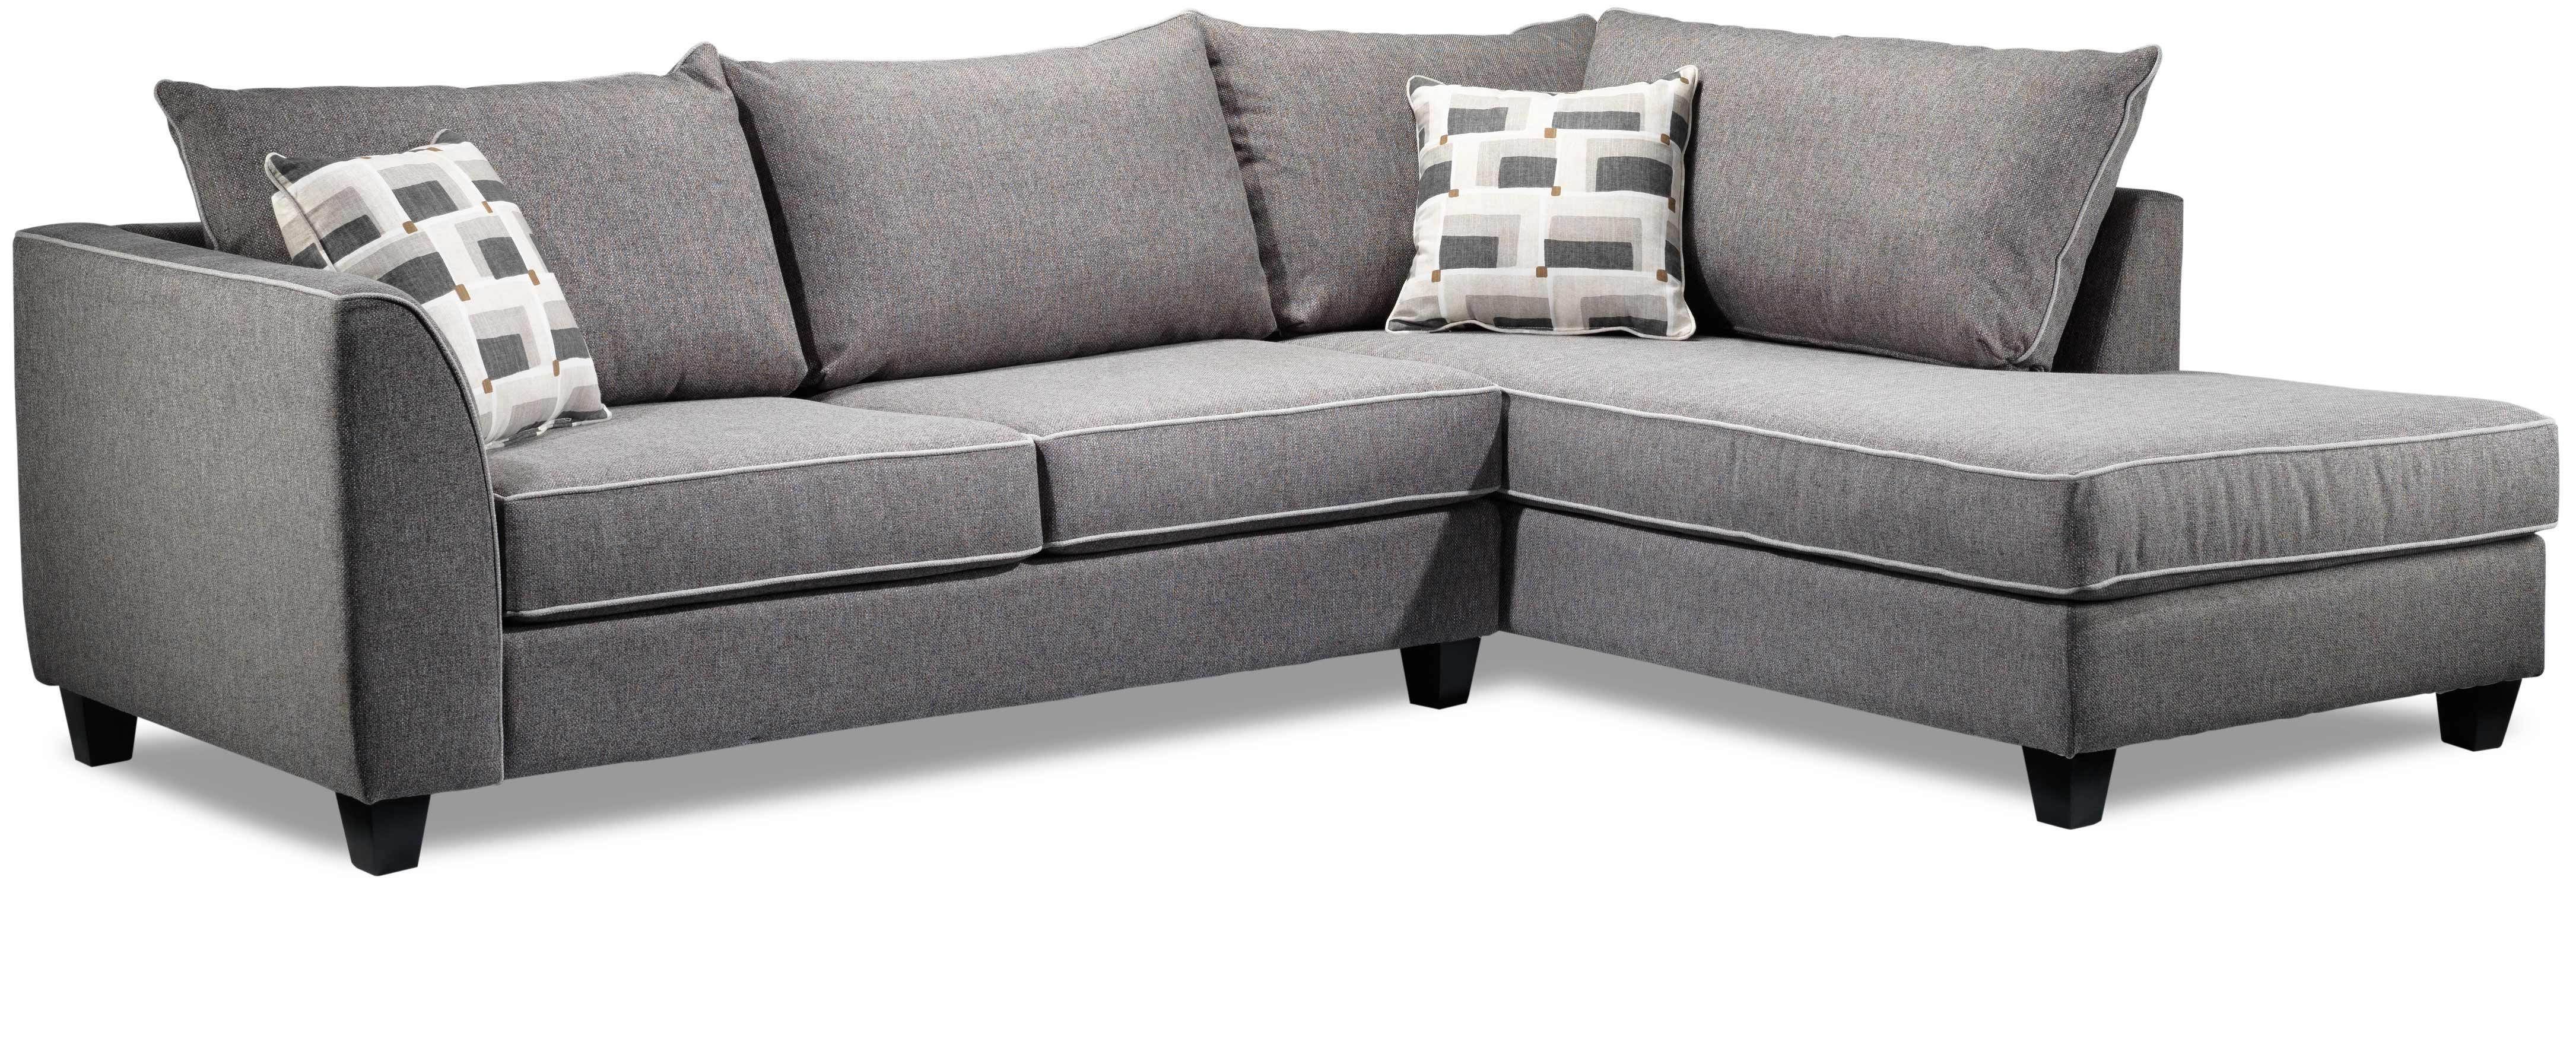 Strange Finnerty 2 Piece Sectional With Right Facing Chaise Silver Andrewgaddart Wooden Chair Designs For Living Room Andrewgaddartcom